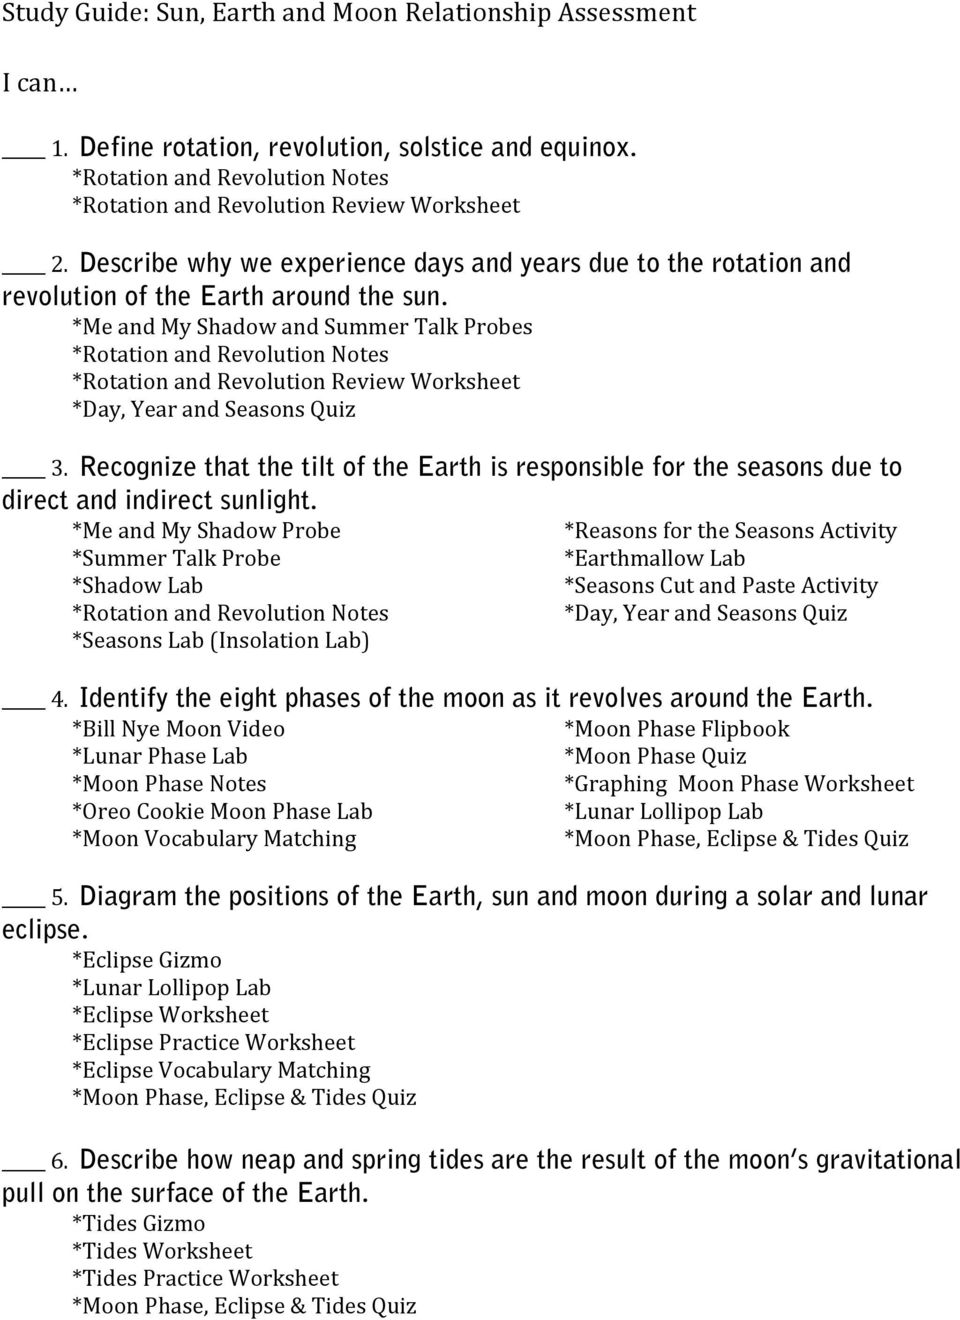 worksheet Tides Worksheet study guide sun earth and moon relationship assessment pdf me my shadow summer talk probes rotation revolution review worksheet